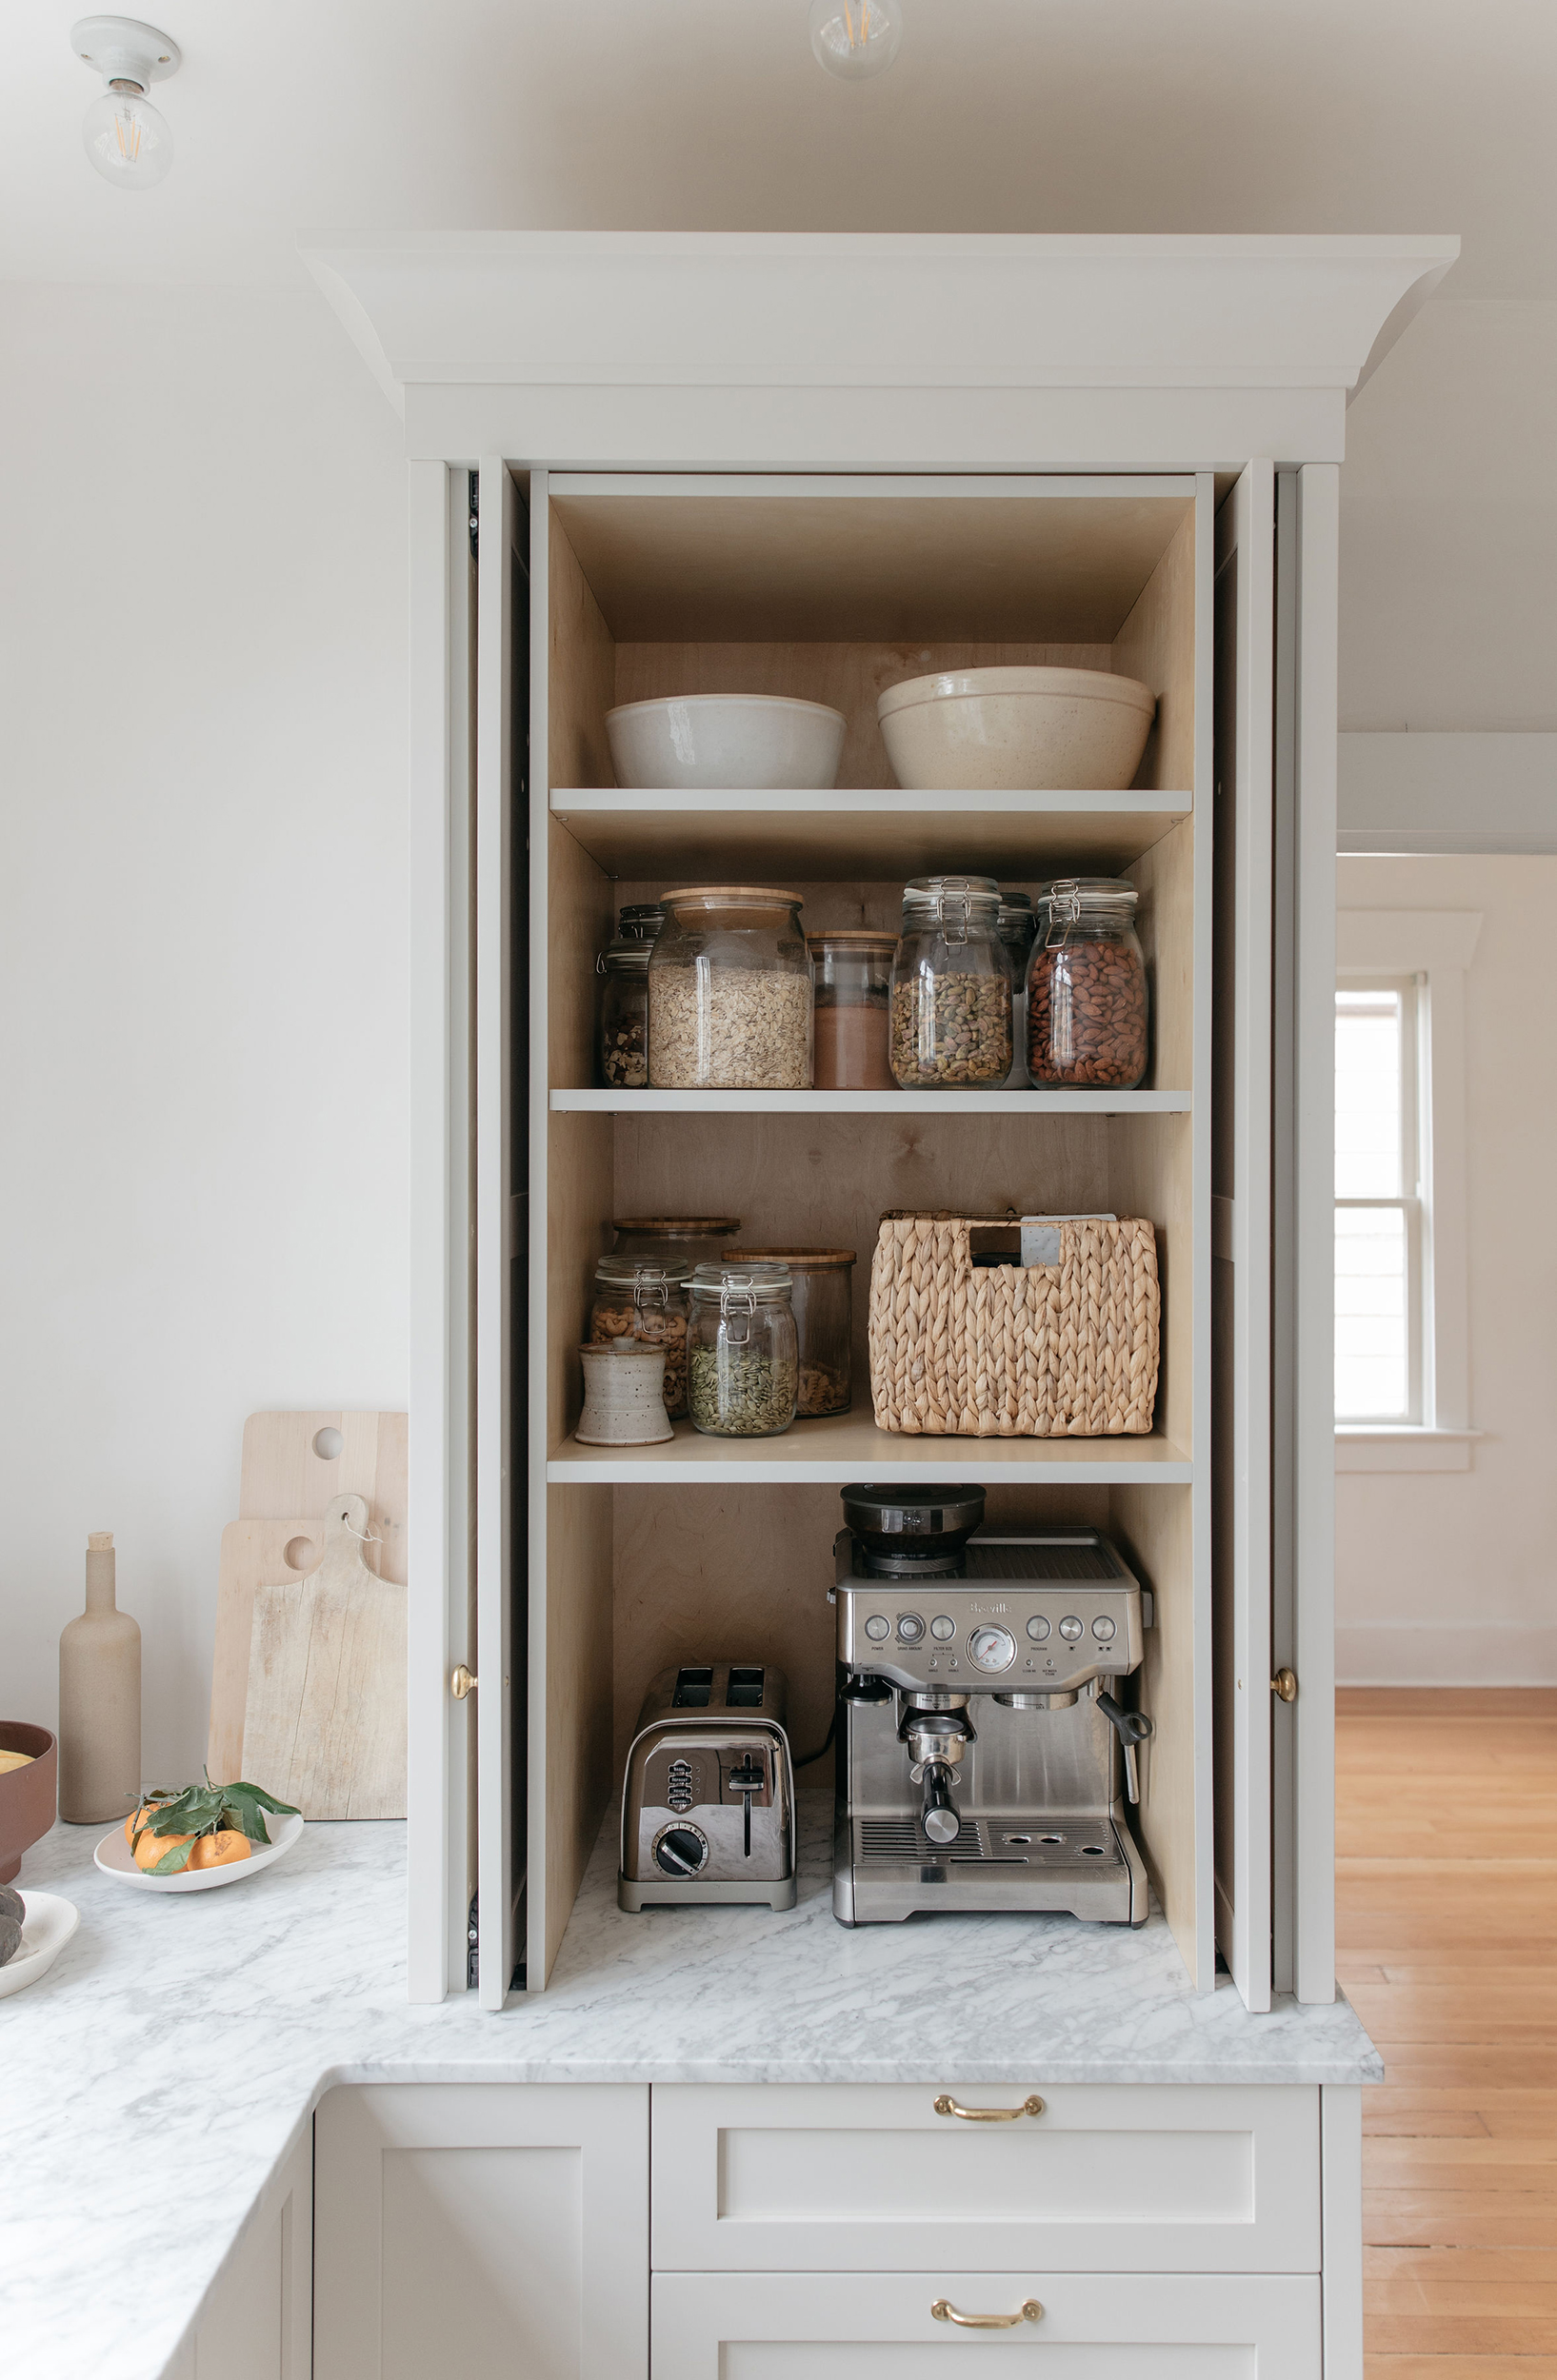 How to Keep Small Appliances Out of Sight in Your Kitchen 2